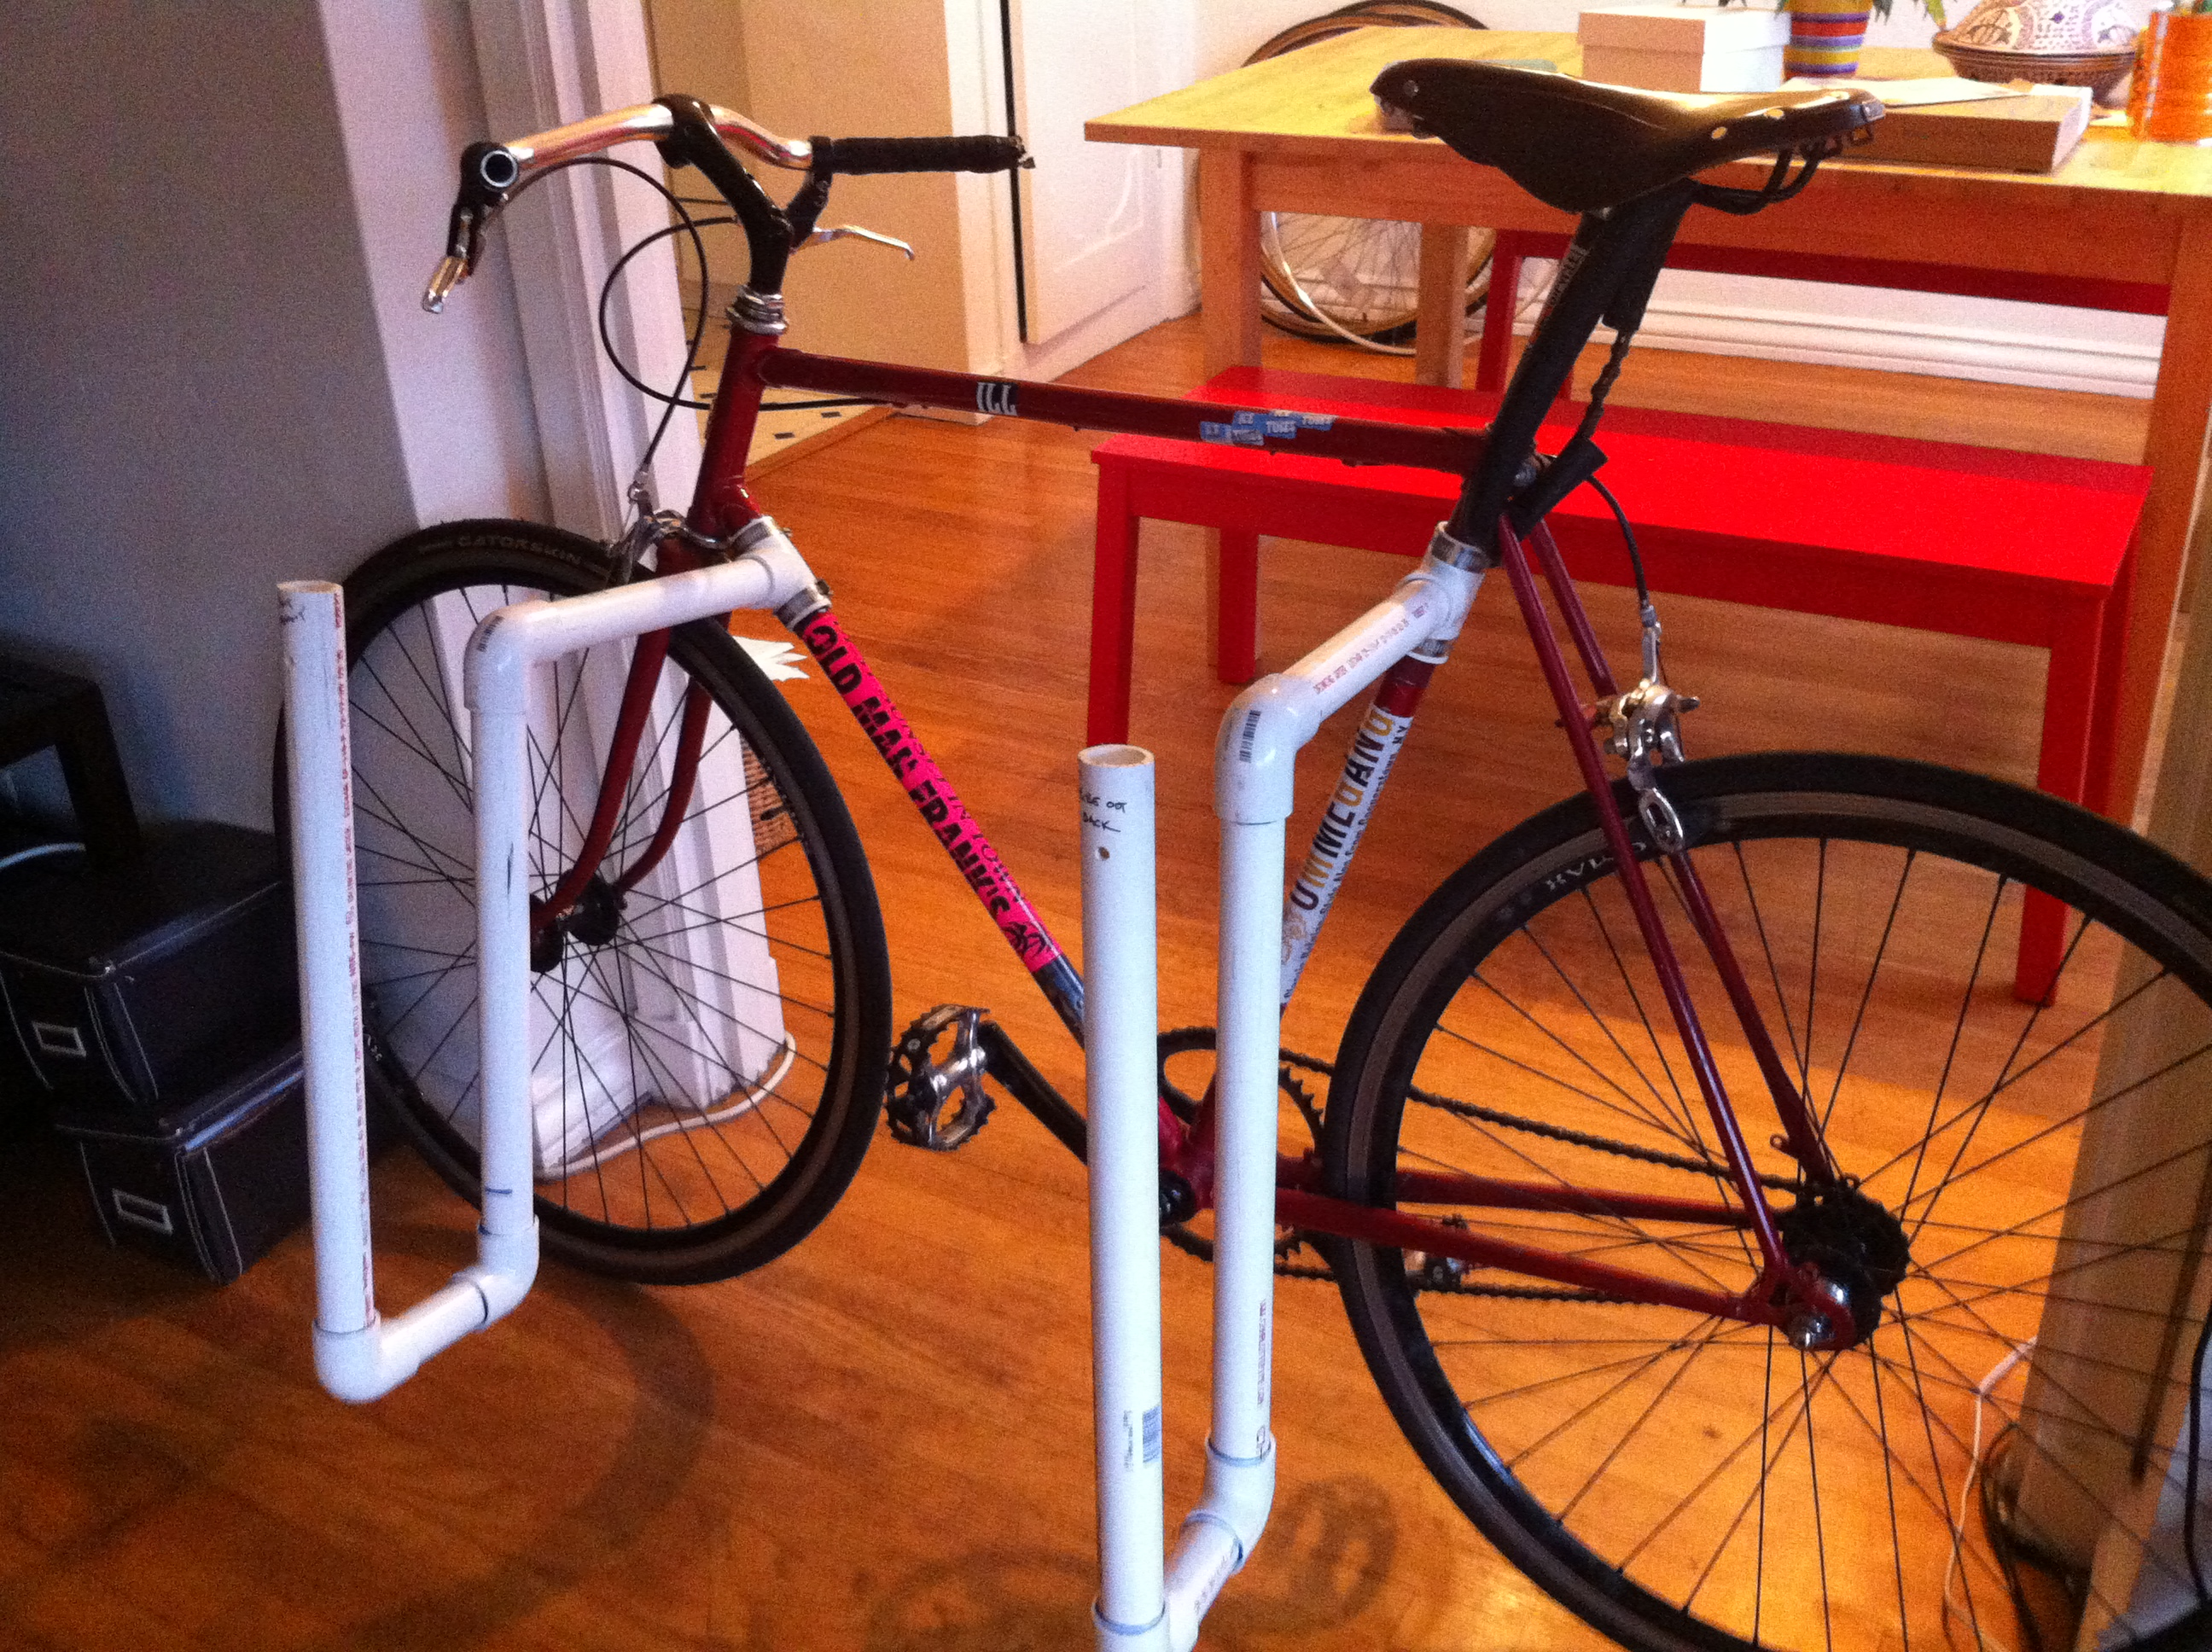 Pvc Surfboard Rack For A Bicycle